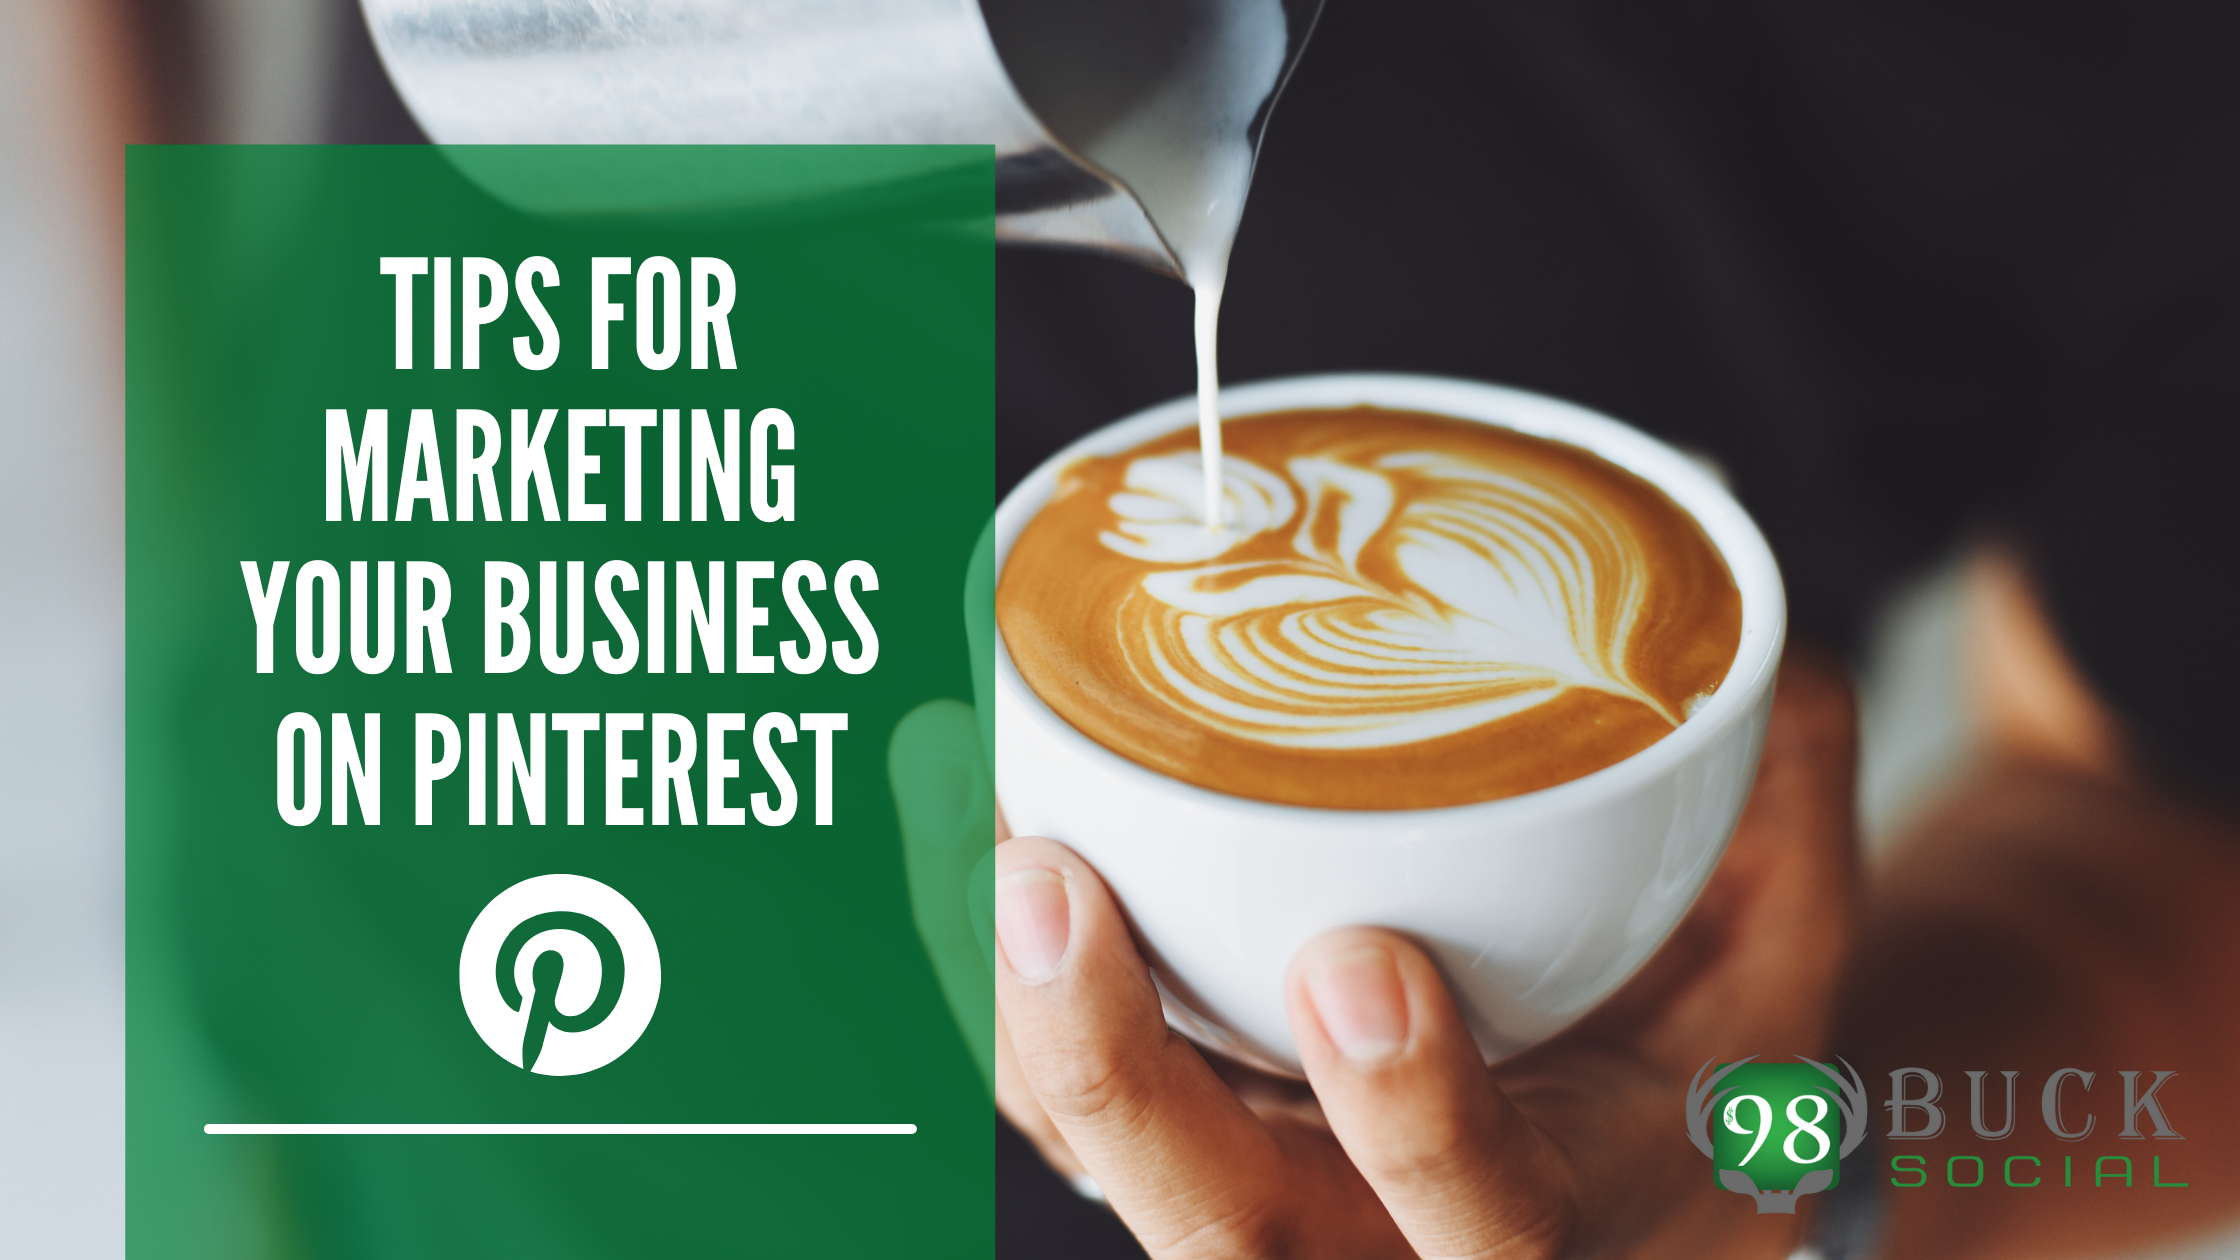 Tips for Marketing Your Business on Pinterest